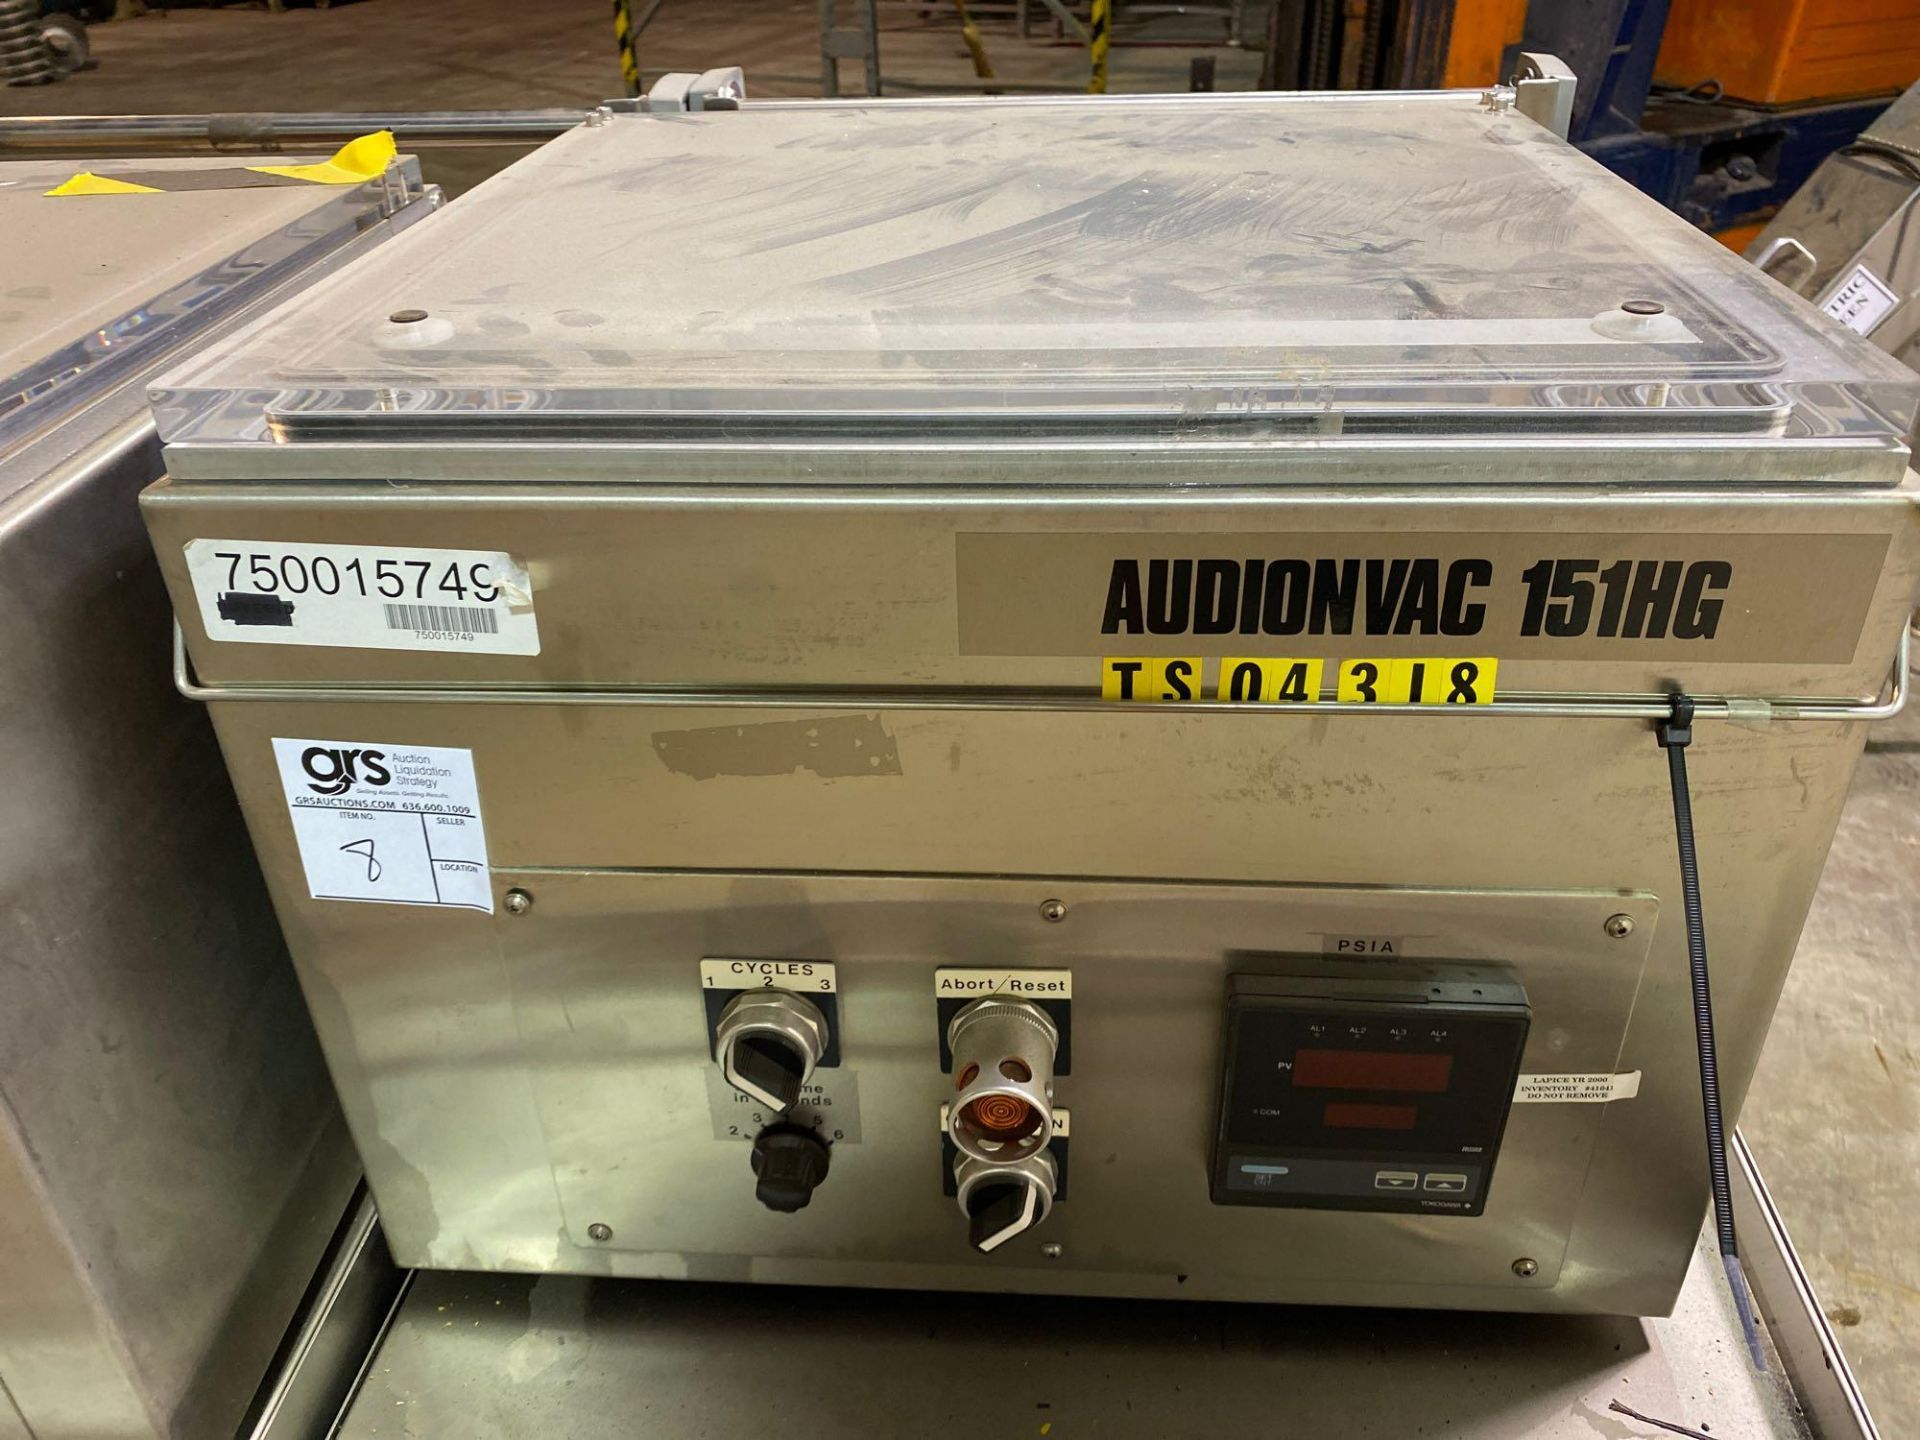 AudionVac VM 151HG - Table Top Vacuum Chamber Packing with Cart - Image 2 of 6